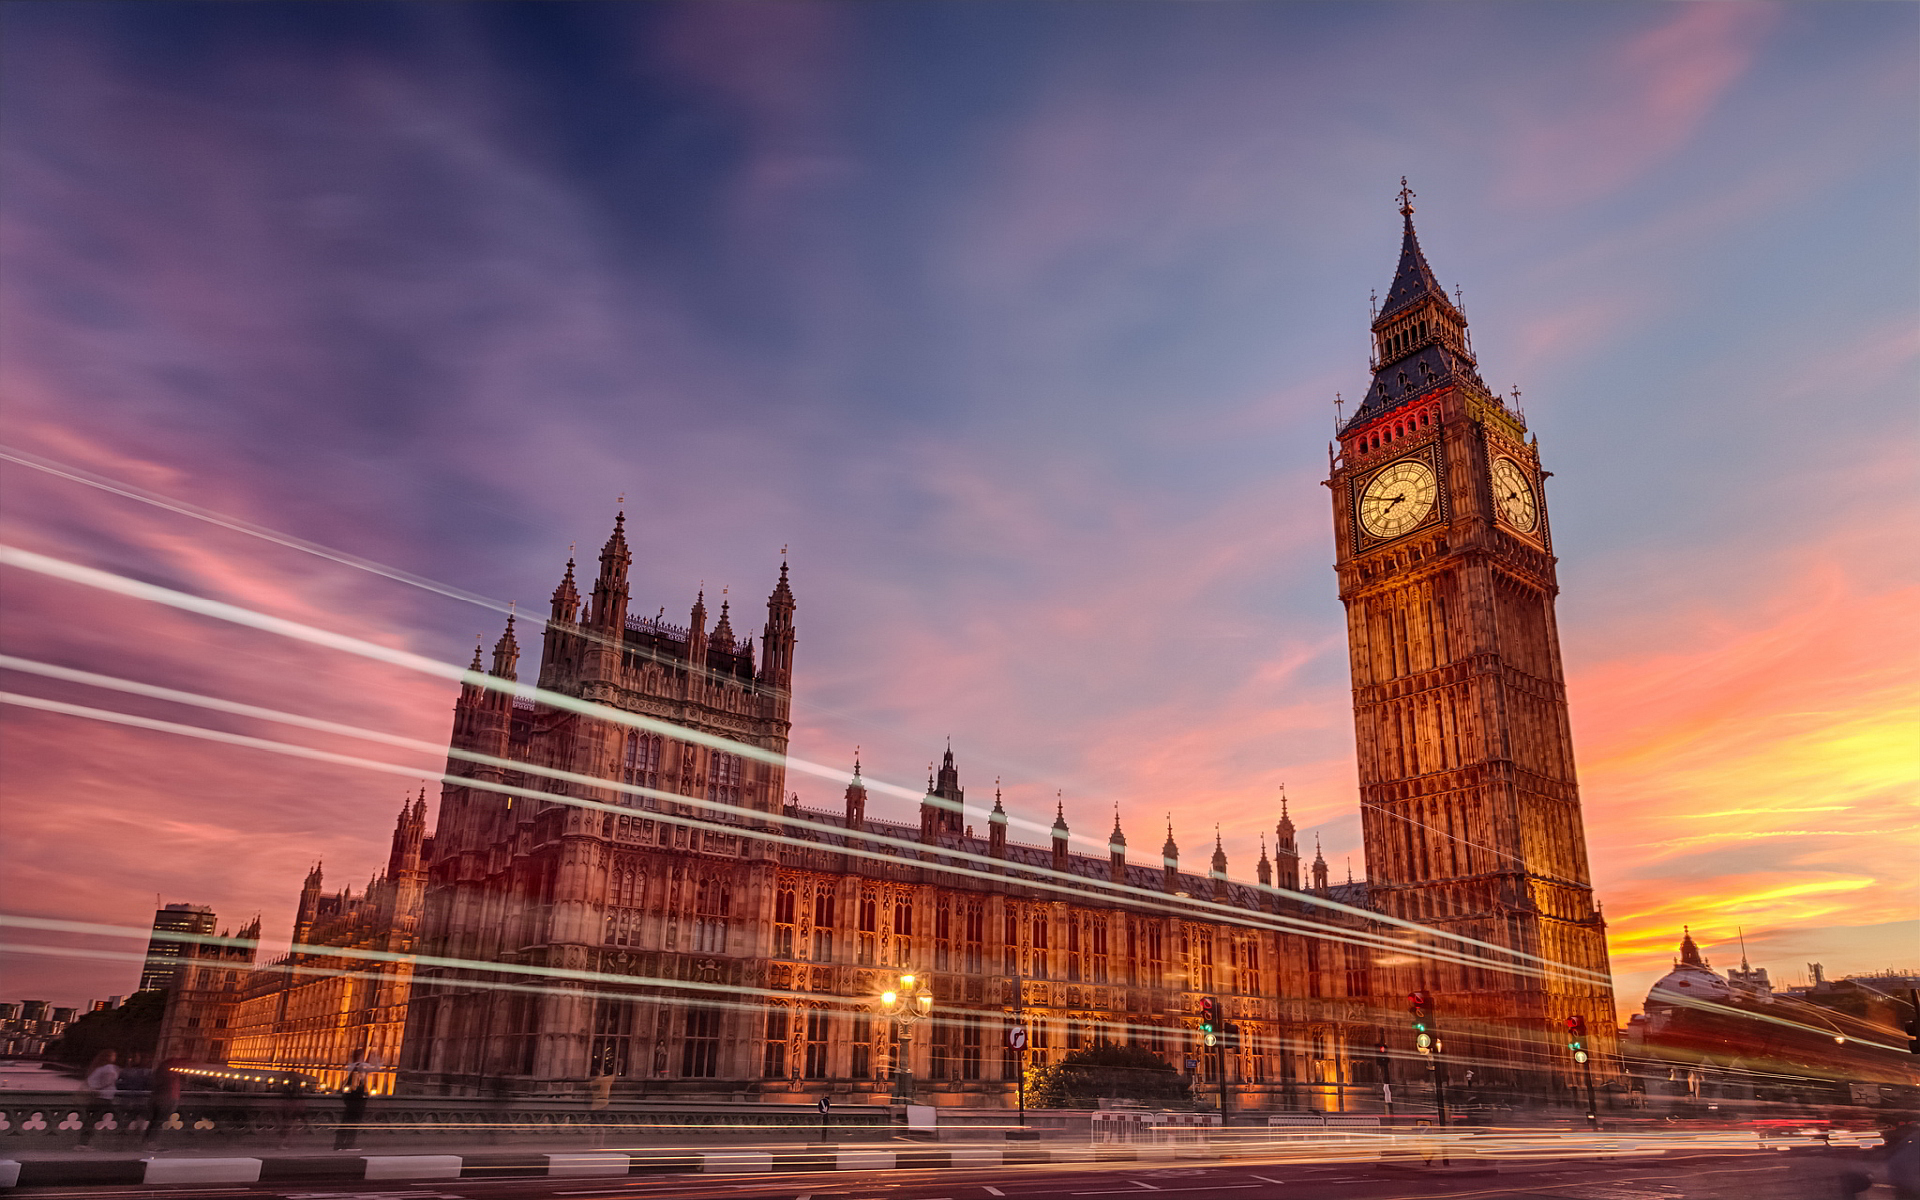 Palace of Westminster and the Big Ben